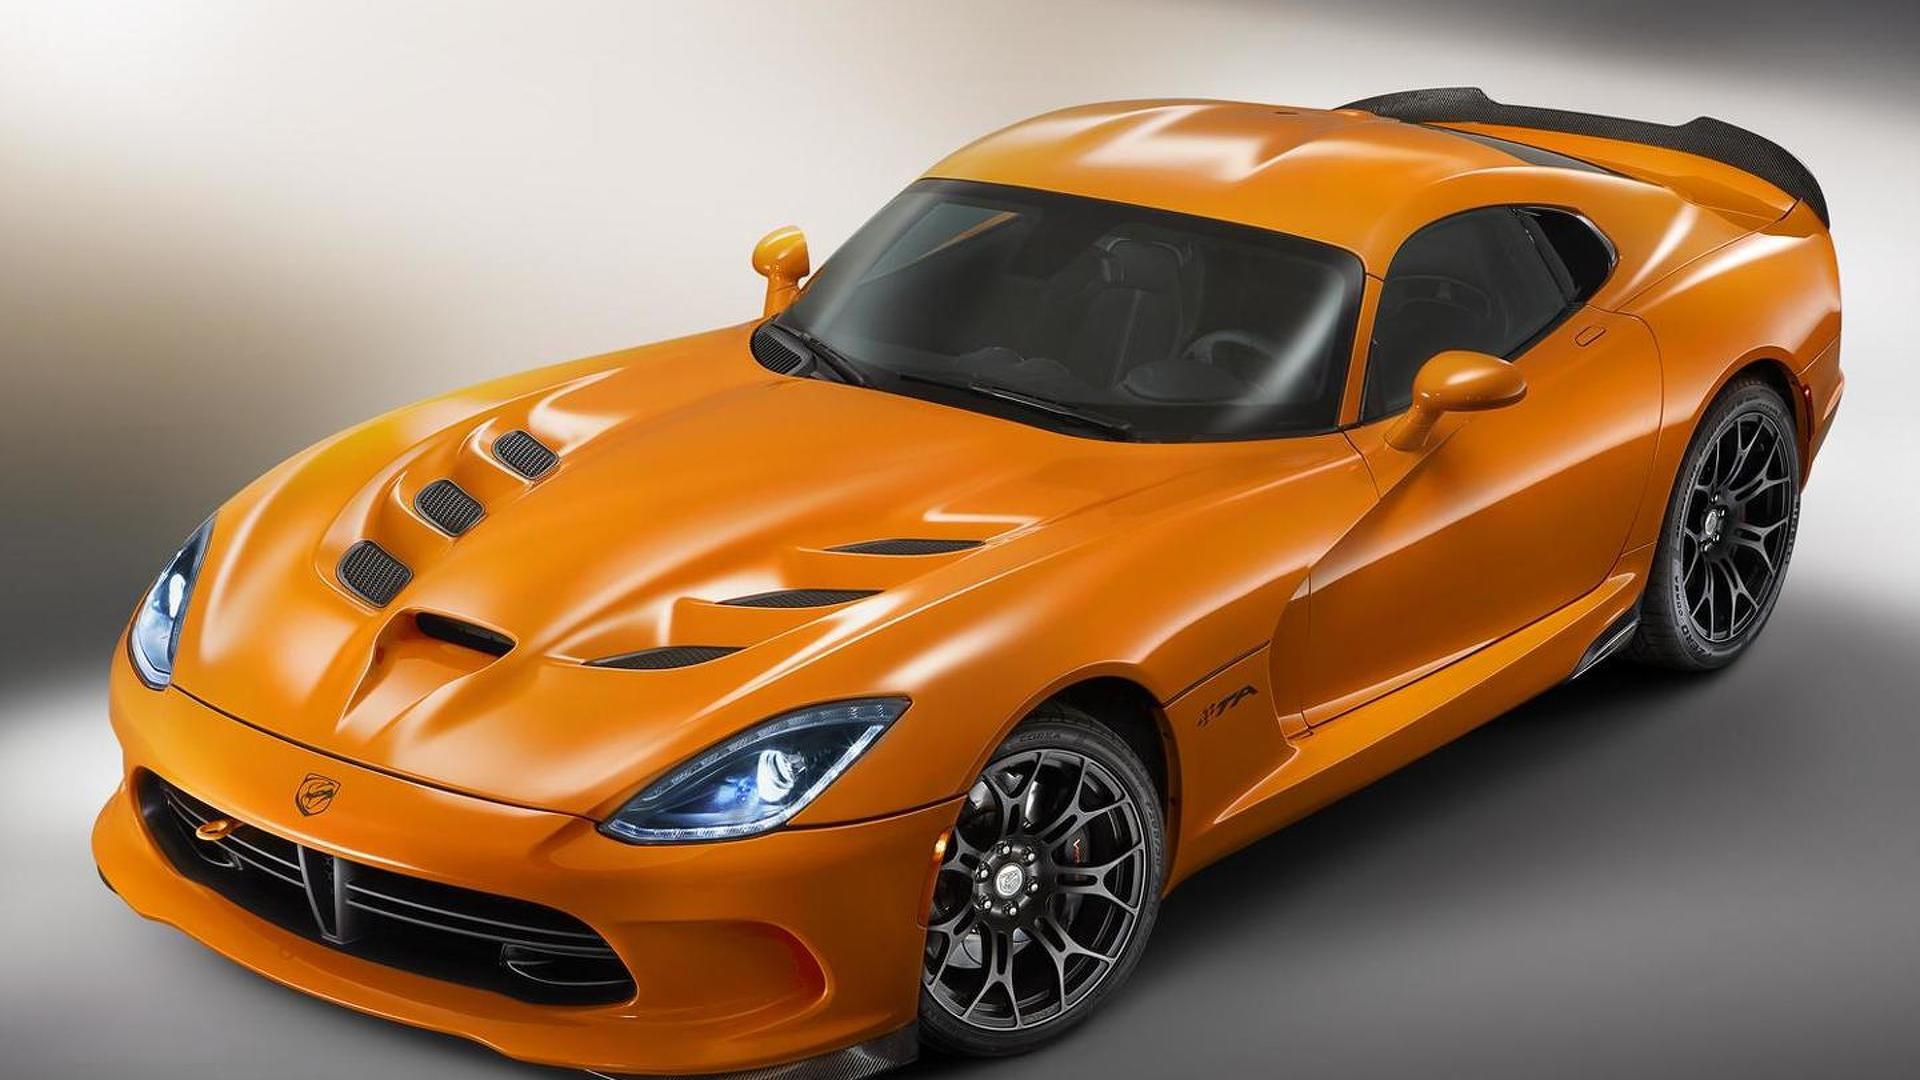 SRT details the 2014 Viper Time Attack, limited to 159 units